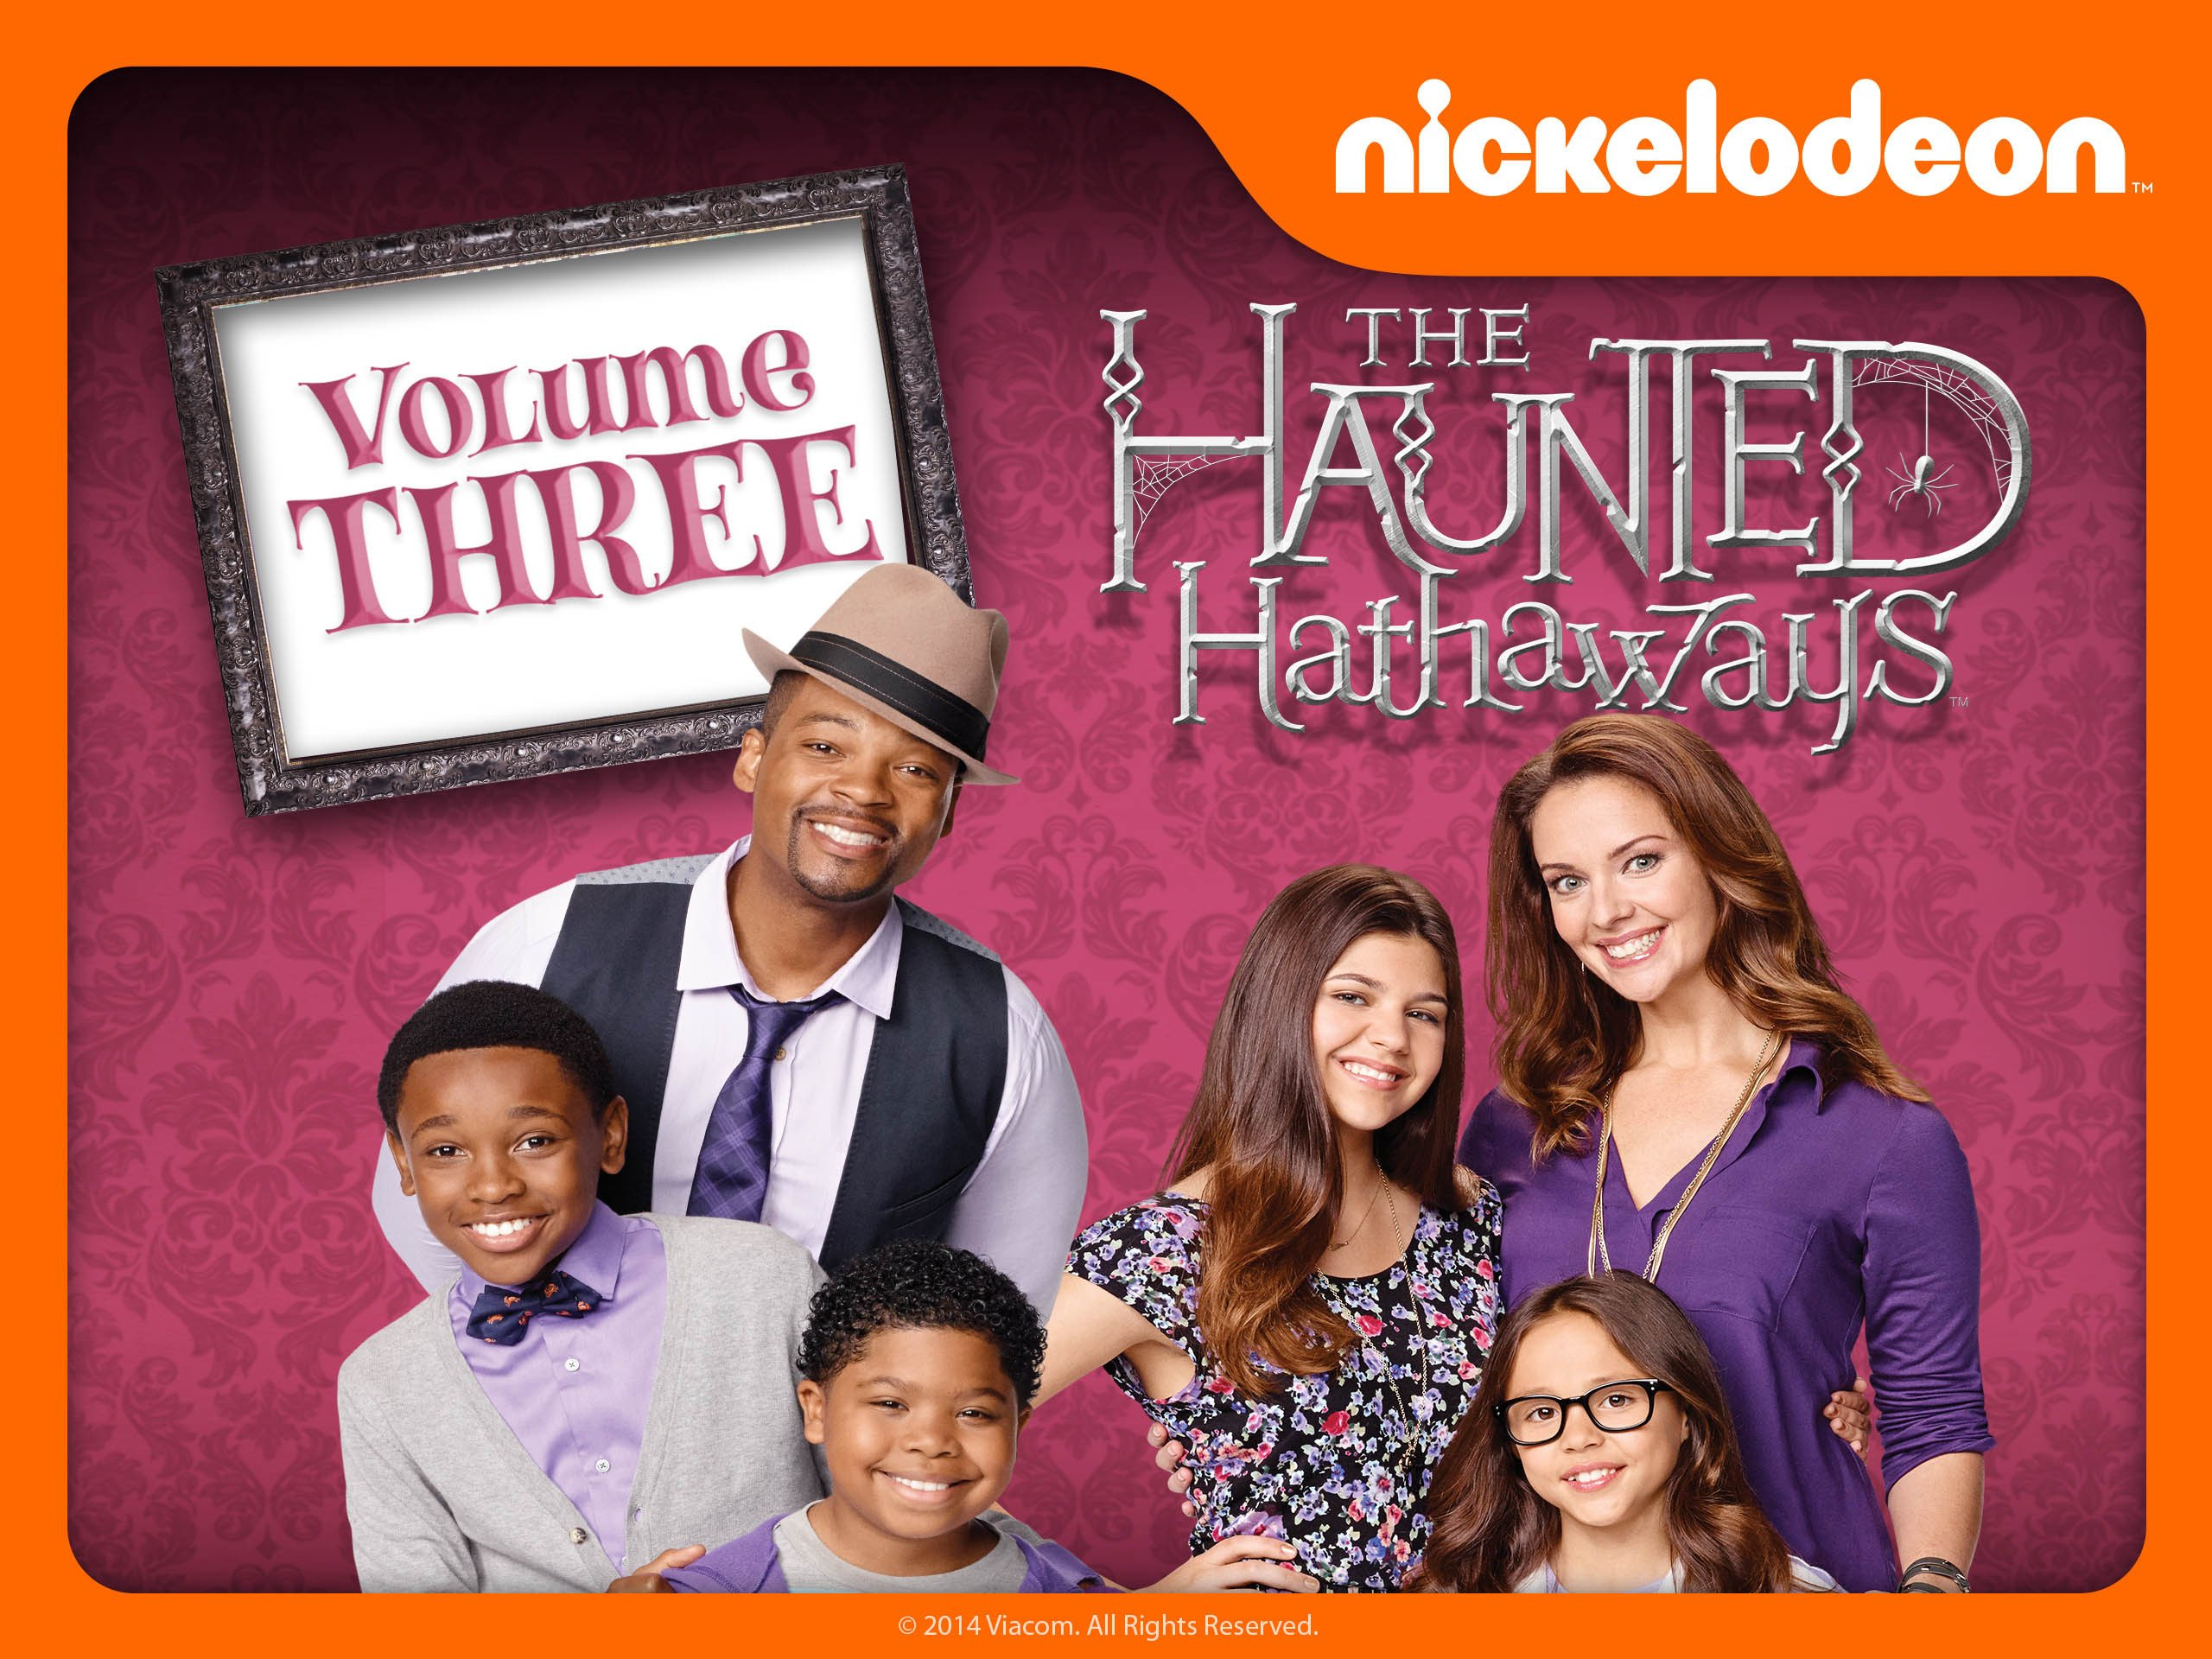 nickelodeons ultimate halloween haunted house (2016) full special 1080p hd